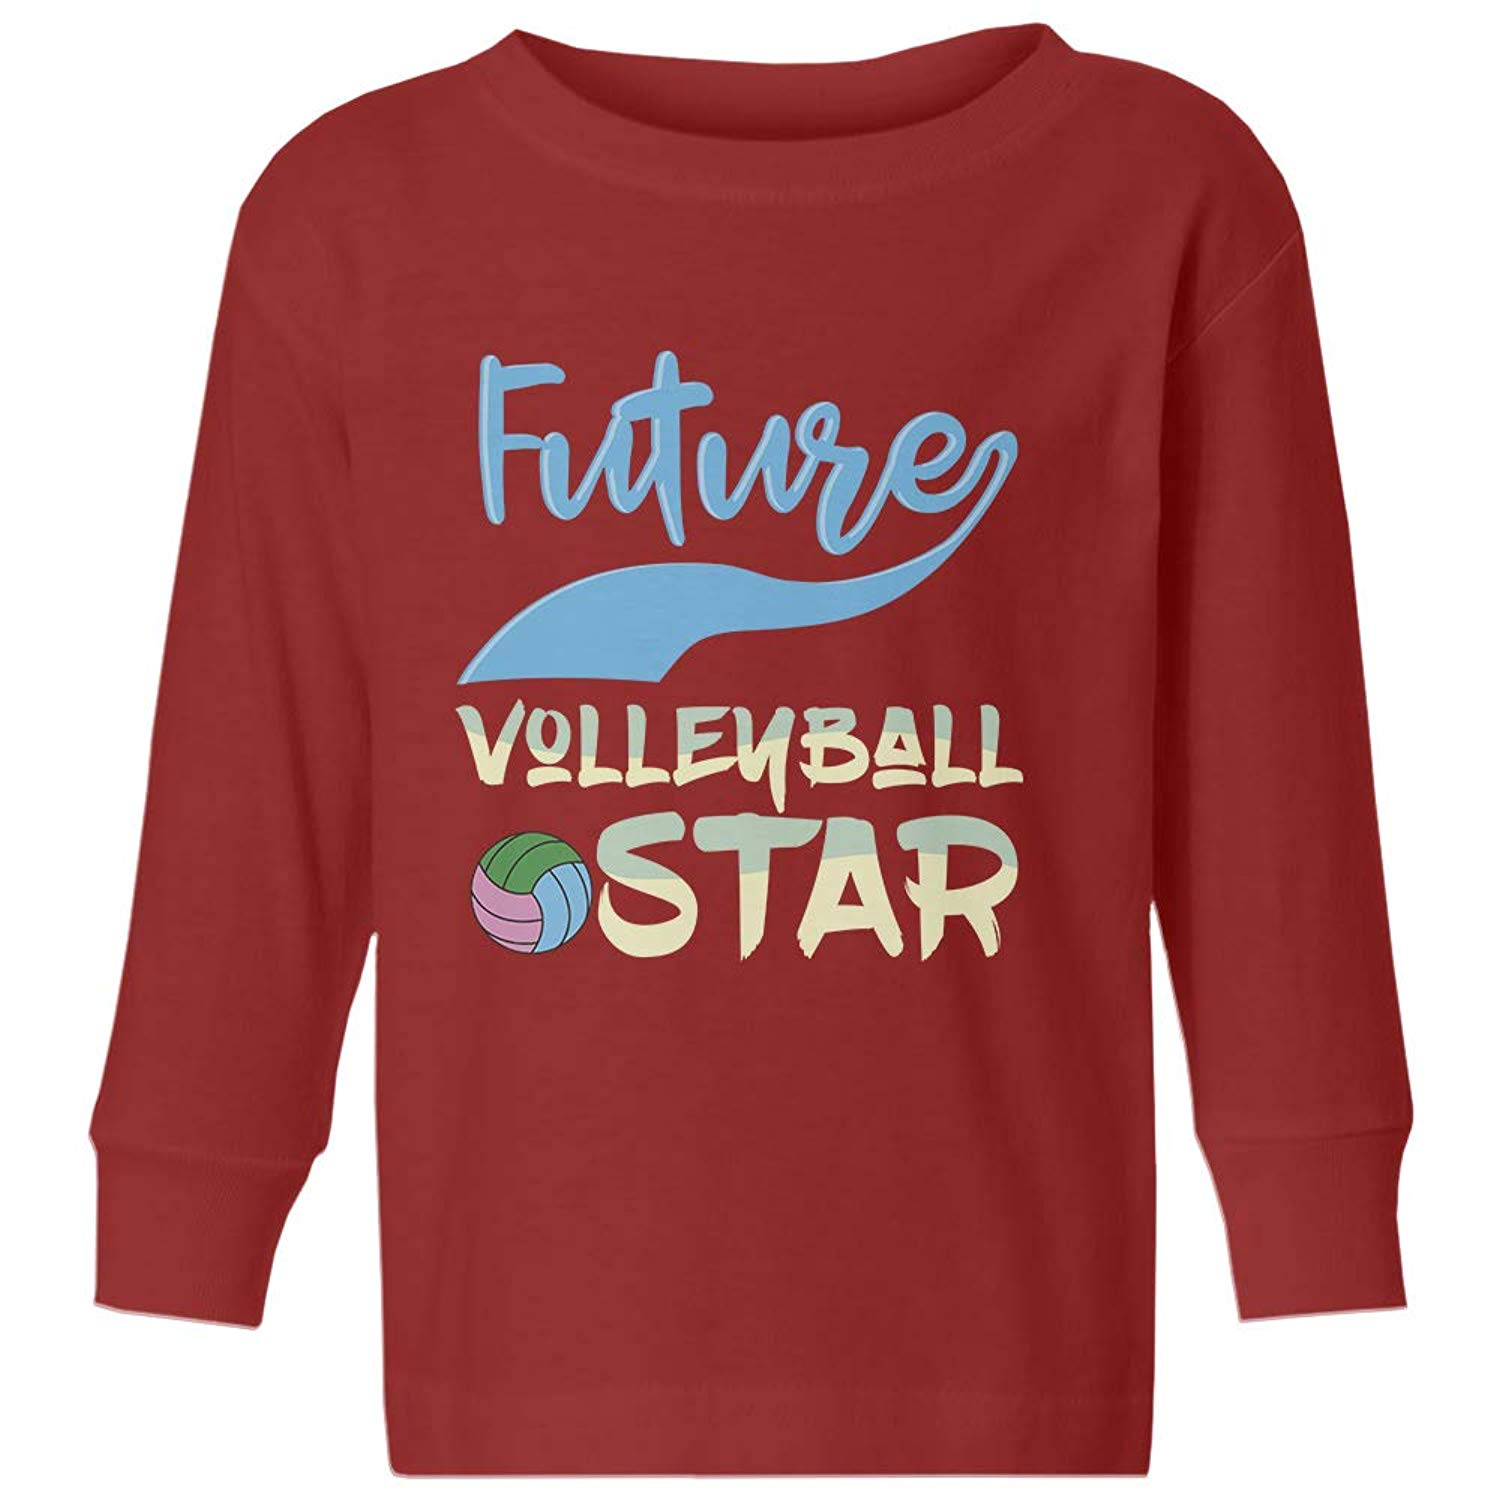 1d1fe5ee1 Get Quotations · Volleyball Little Star Future Volleyball Star Youth &  Toddler Long Sleeve Tee Shirt